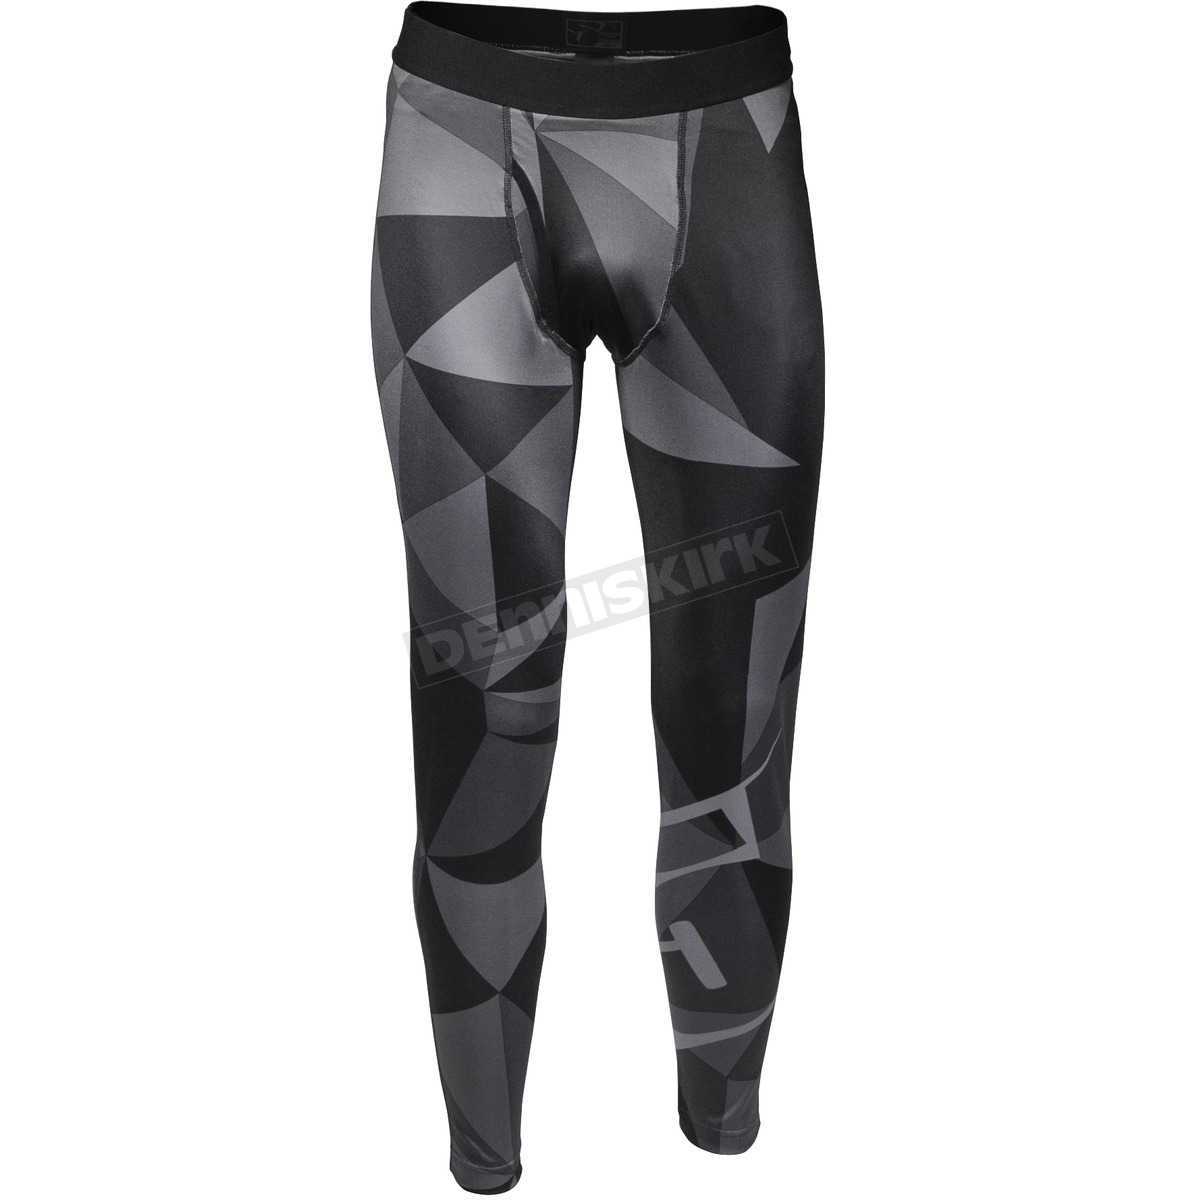 FZN LVL 1 Base Layer Pants